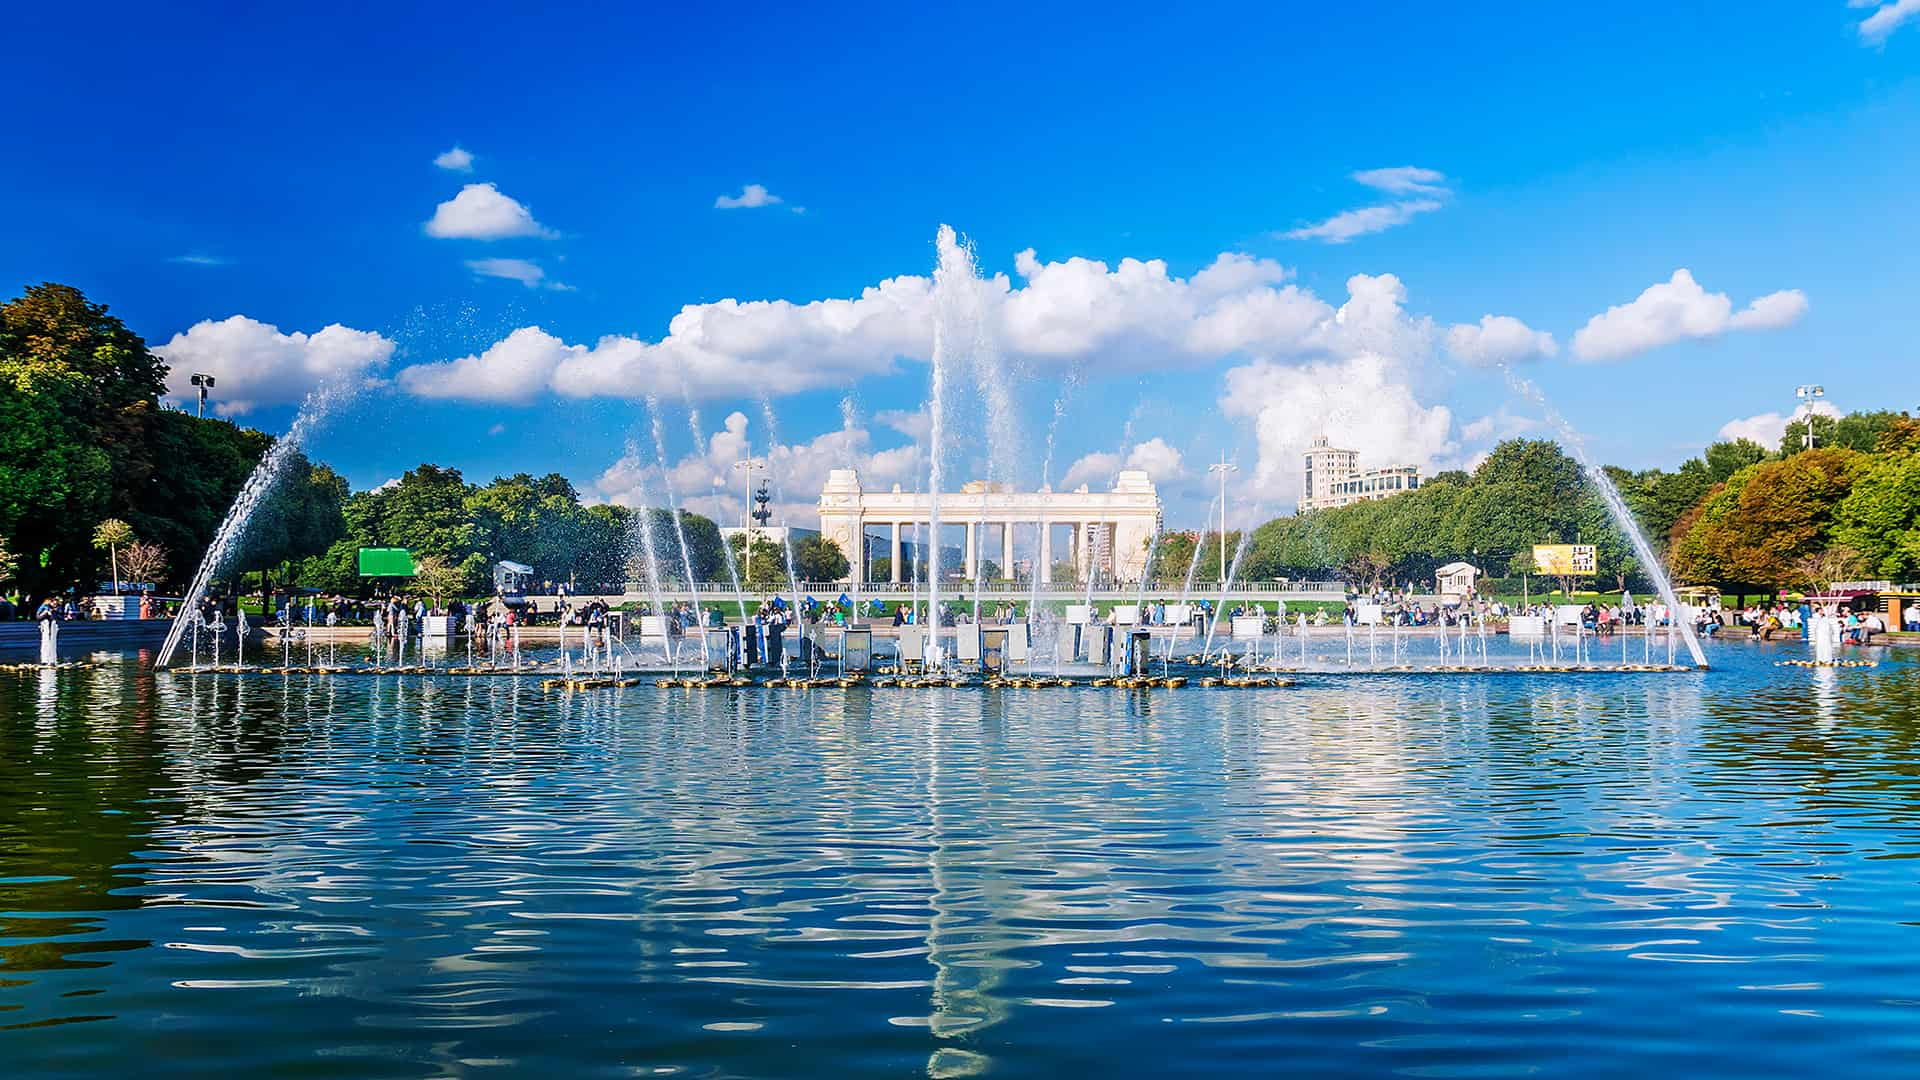 Visit Gorki Park in Moscow